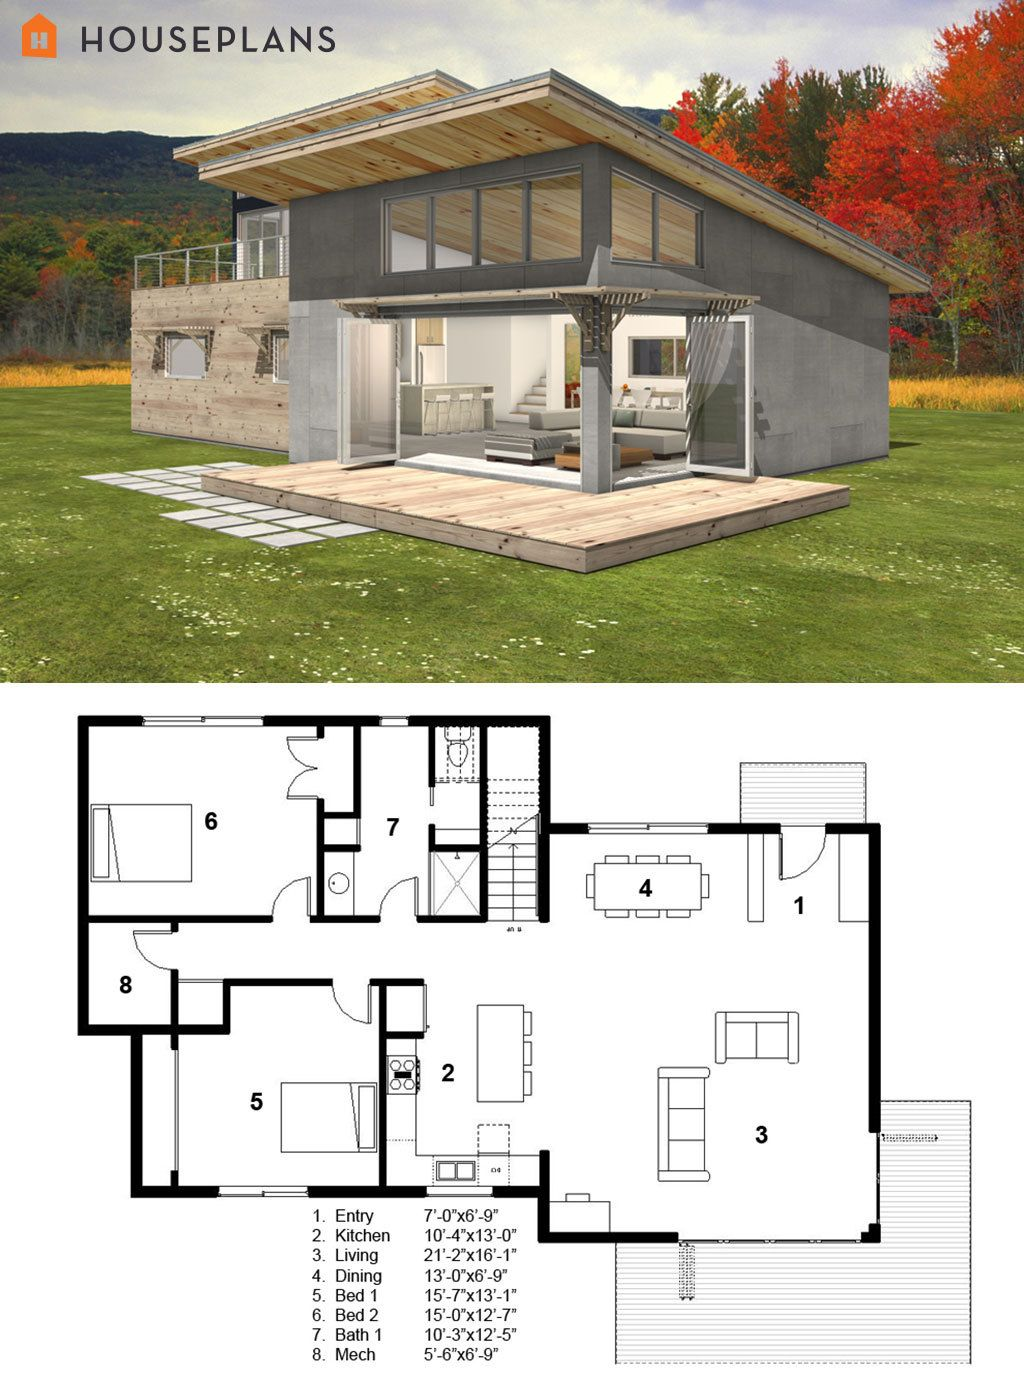 Small modern cabin house plan by freegreen energy for Small modern farmhouse plans